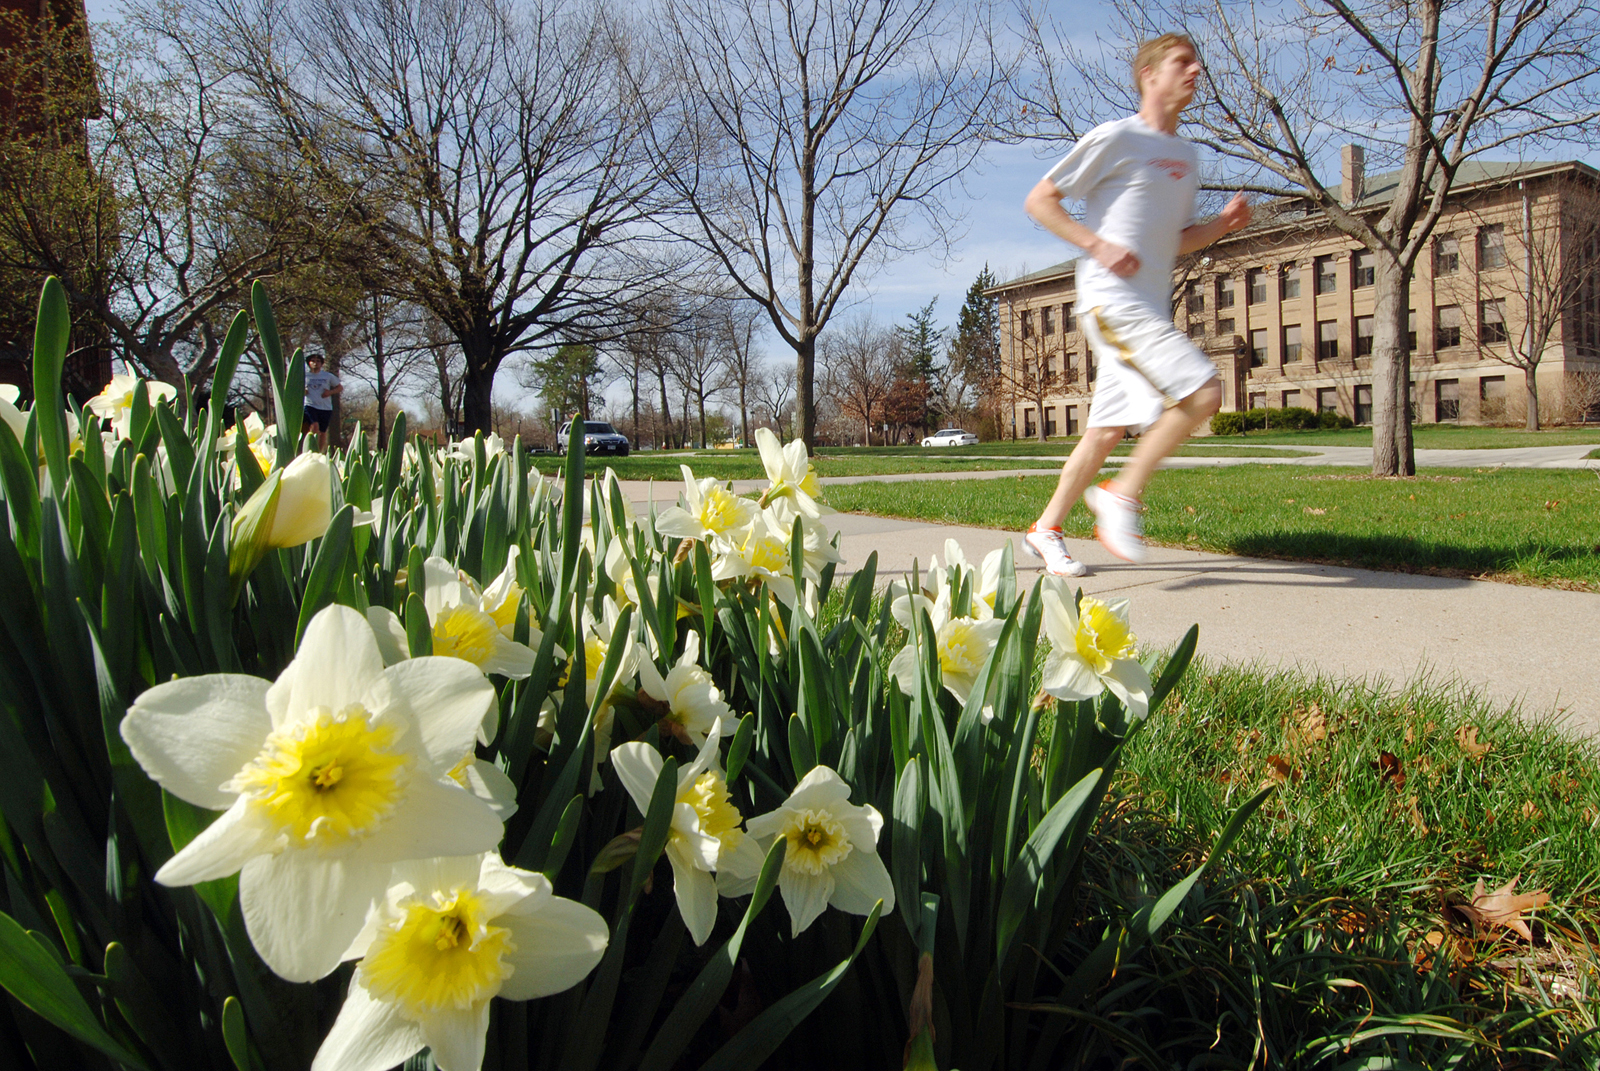 CASNR Week events open with a 5K Fun Run on April 13. (University Communications file photo)